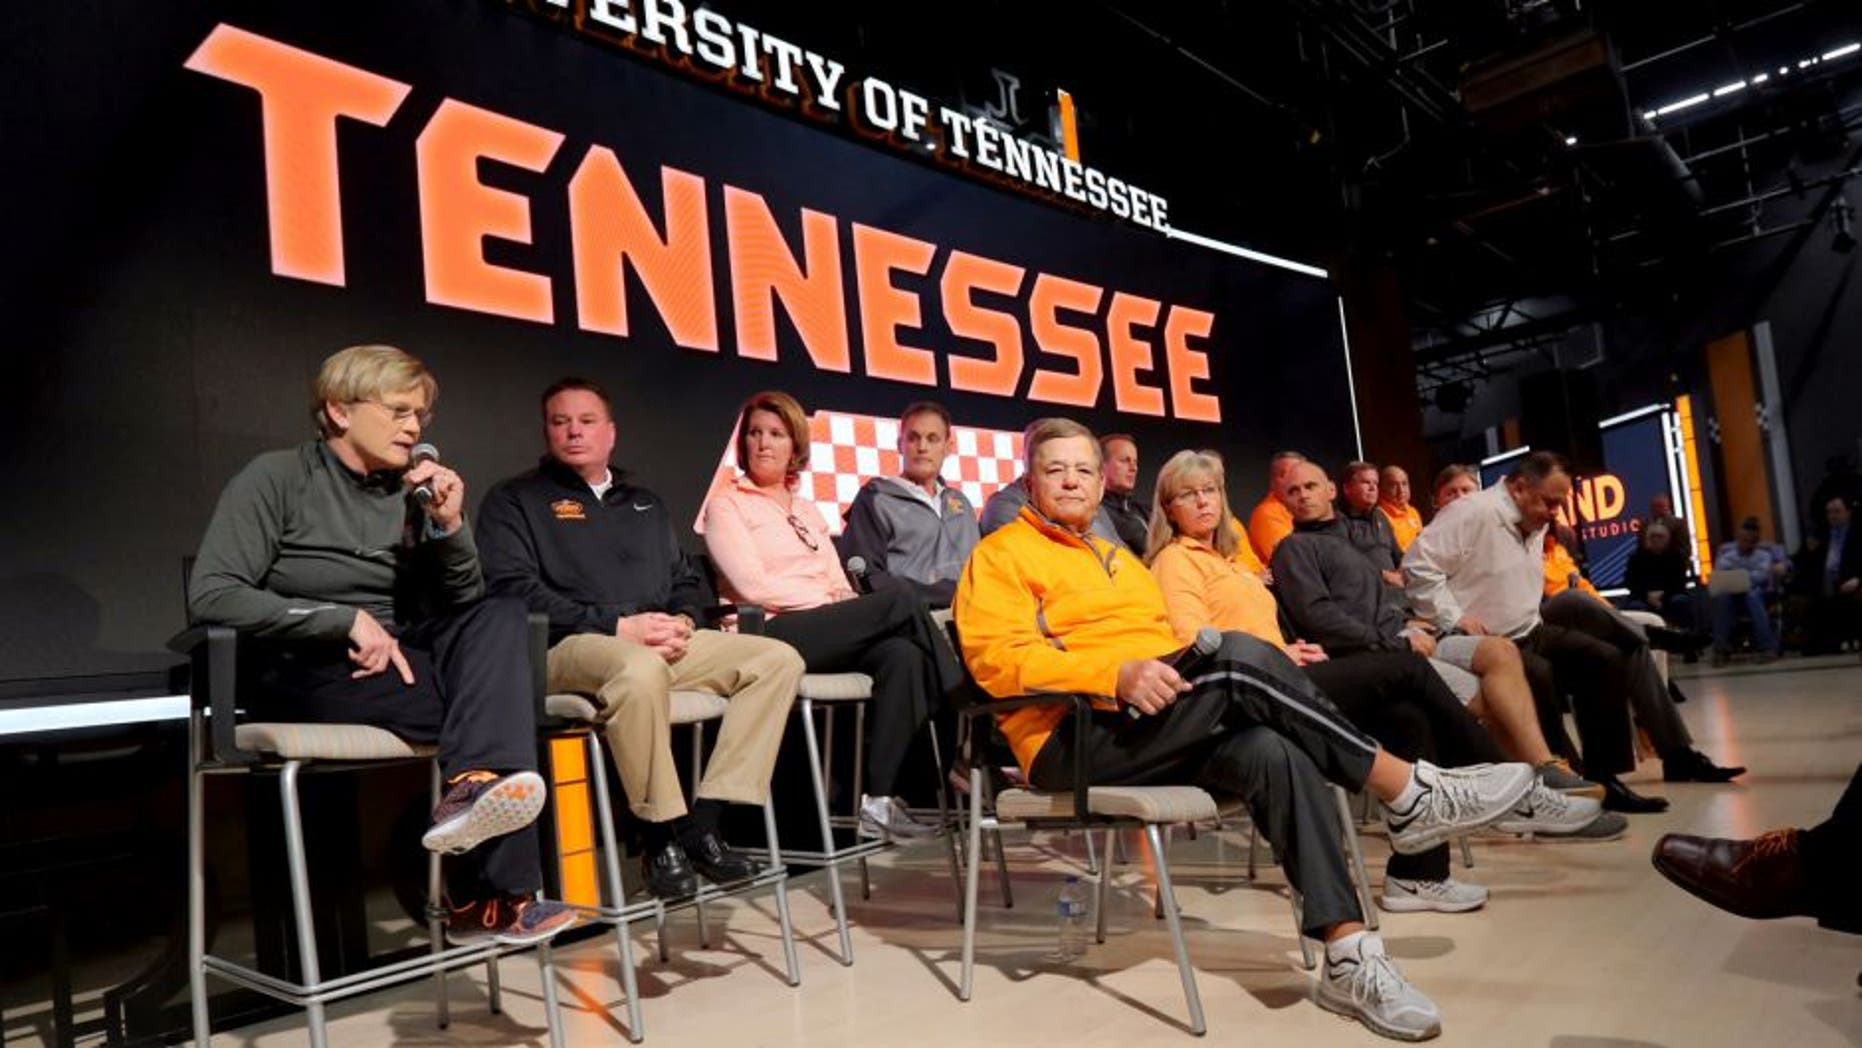 Feb 23, 2016; Knoxville, TN, USA; Tennessee Lady Volunteers head coach Holly Warlick speaks during the joint head coach press conference at Brenda Lawson Athletic Center. Mandatory Credit: Randy Sartin-USA TODAY Sports